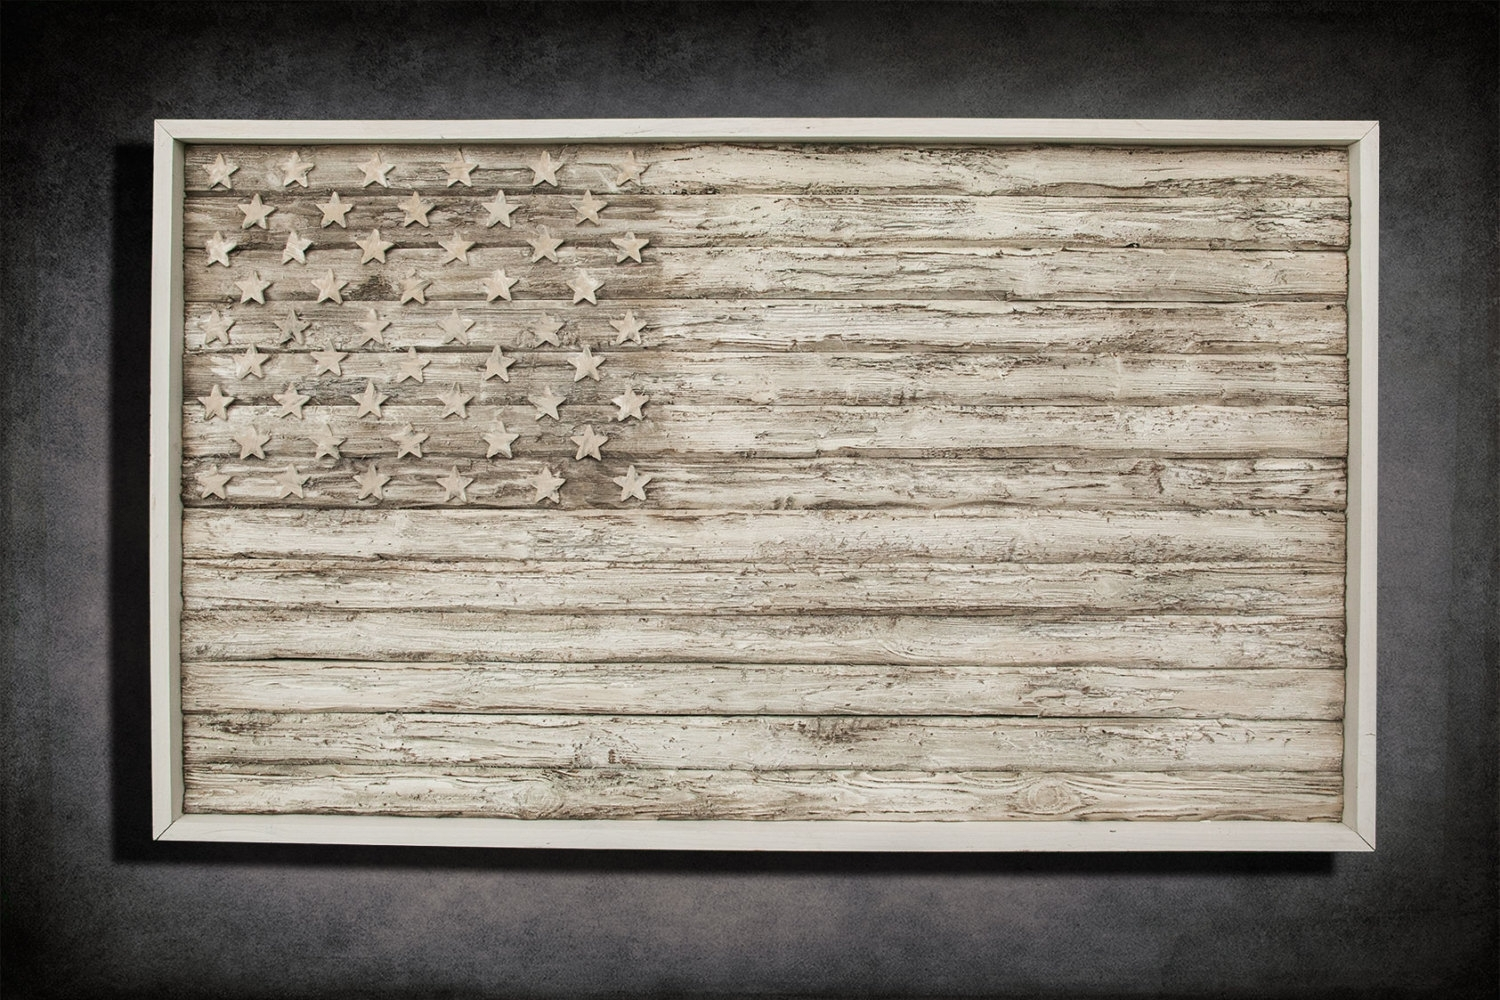 American Flag, Weathered Wood, One Of A Kind, 3D, Wooden, Vintage Pertaining To Newest Vintage American Flag Wall Art (View 4 of 20)